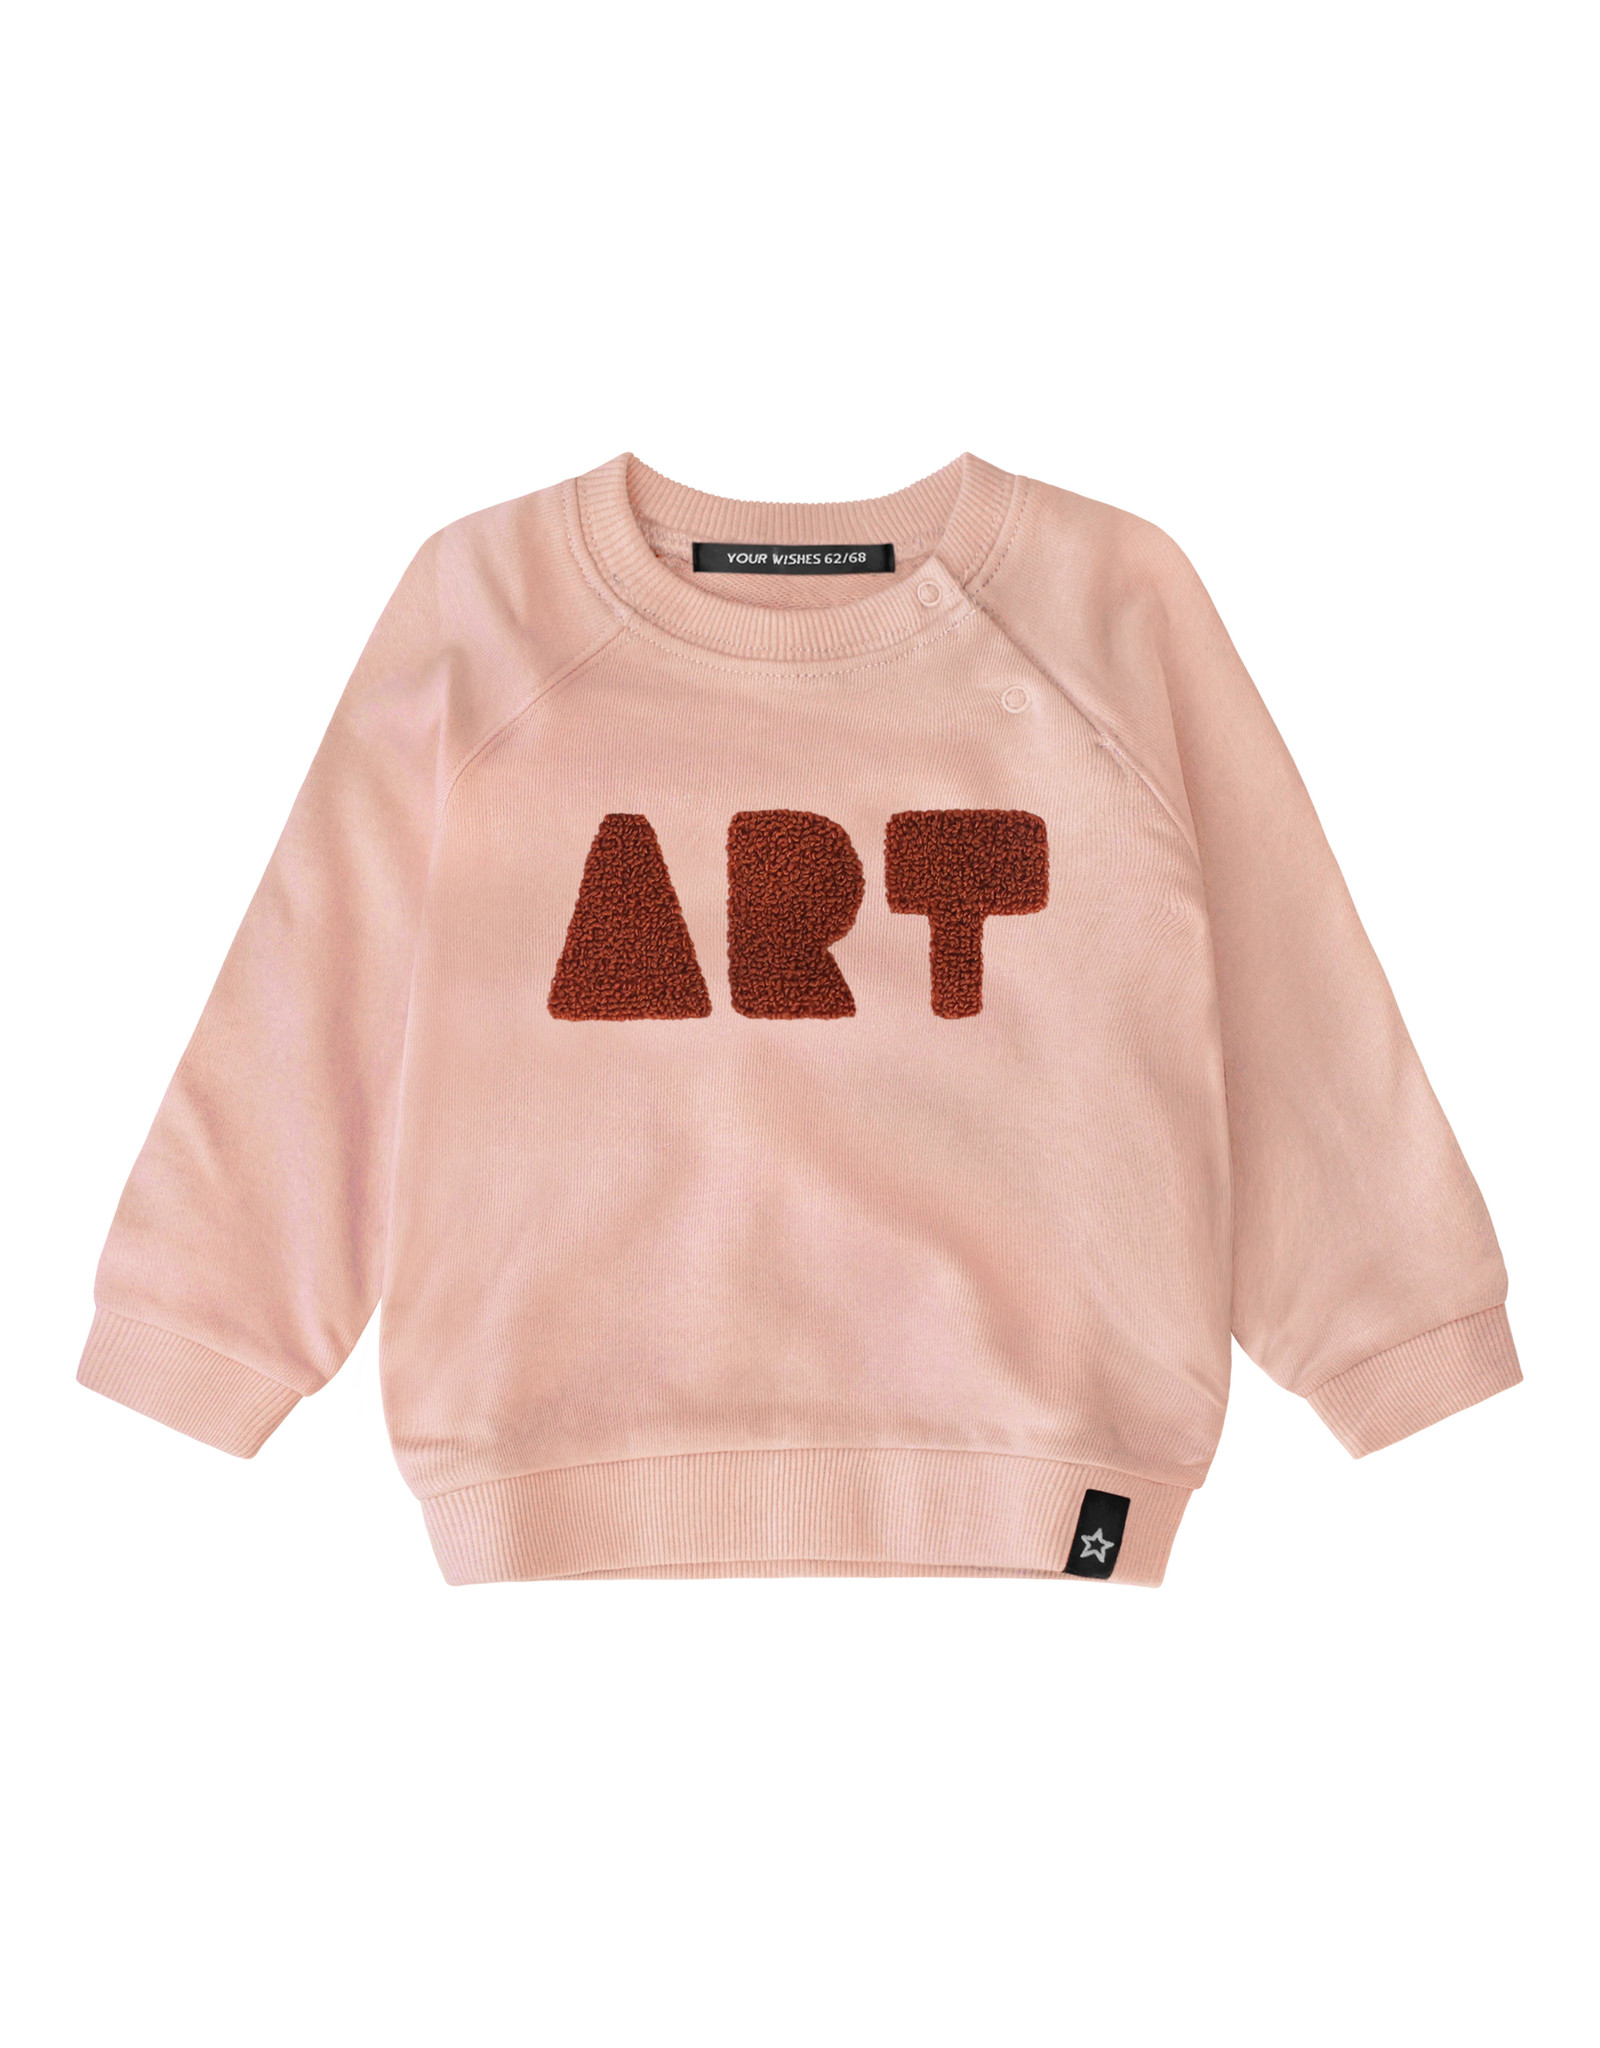 Your Wishes Art | Sweater, Soft Pink